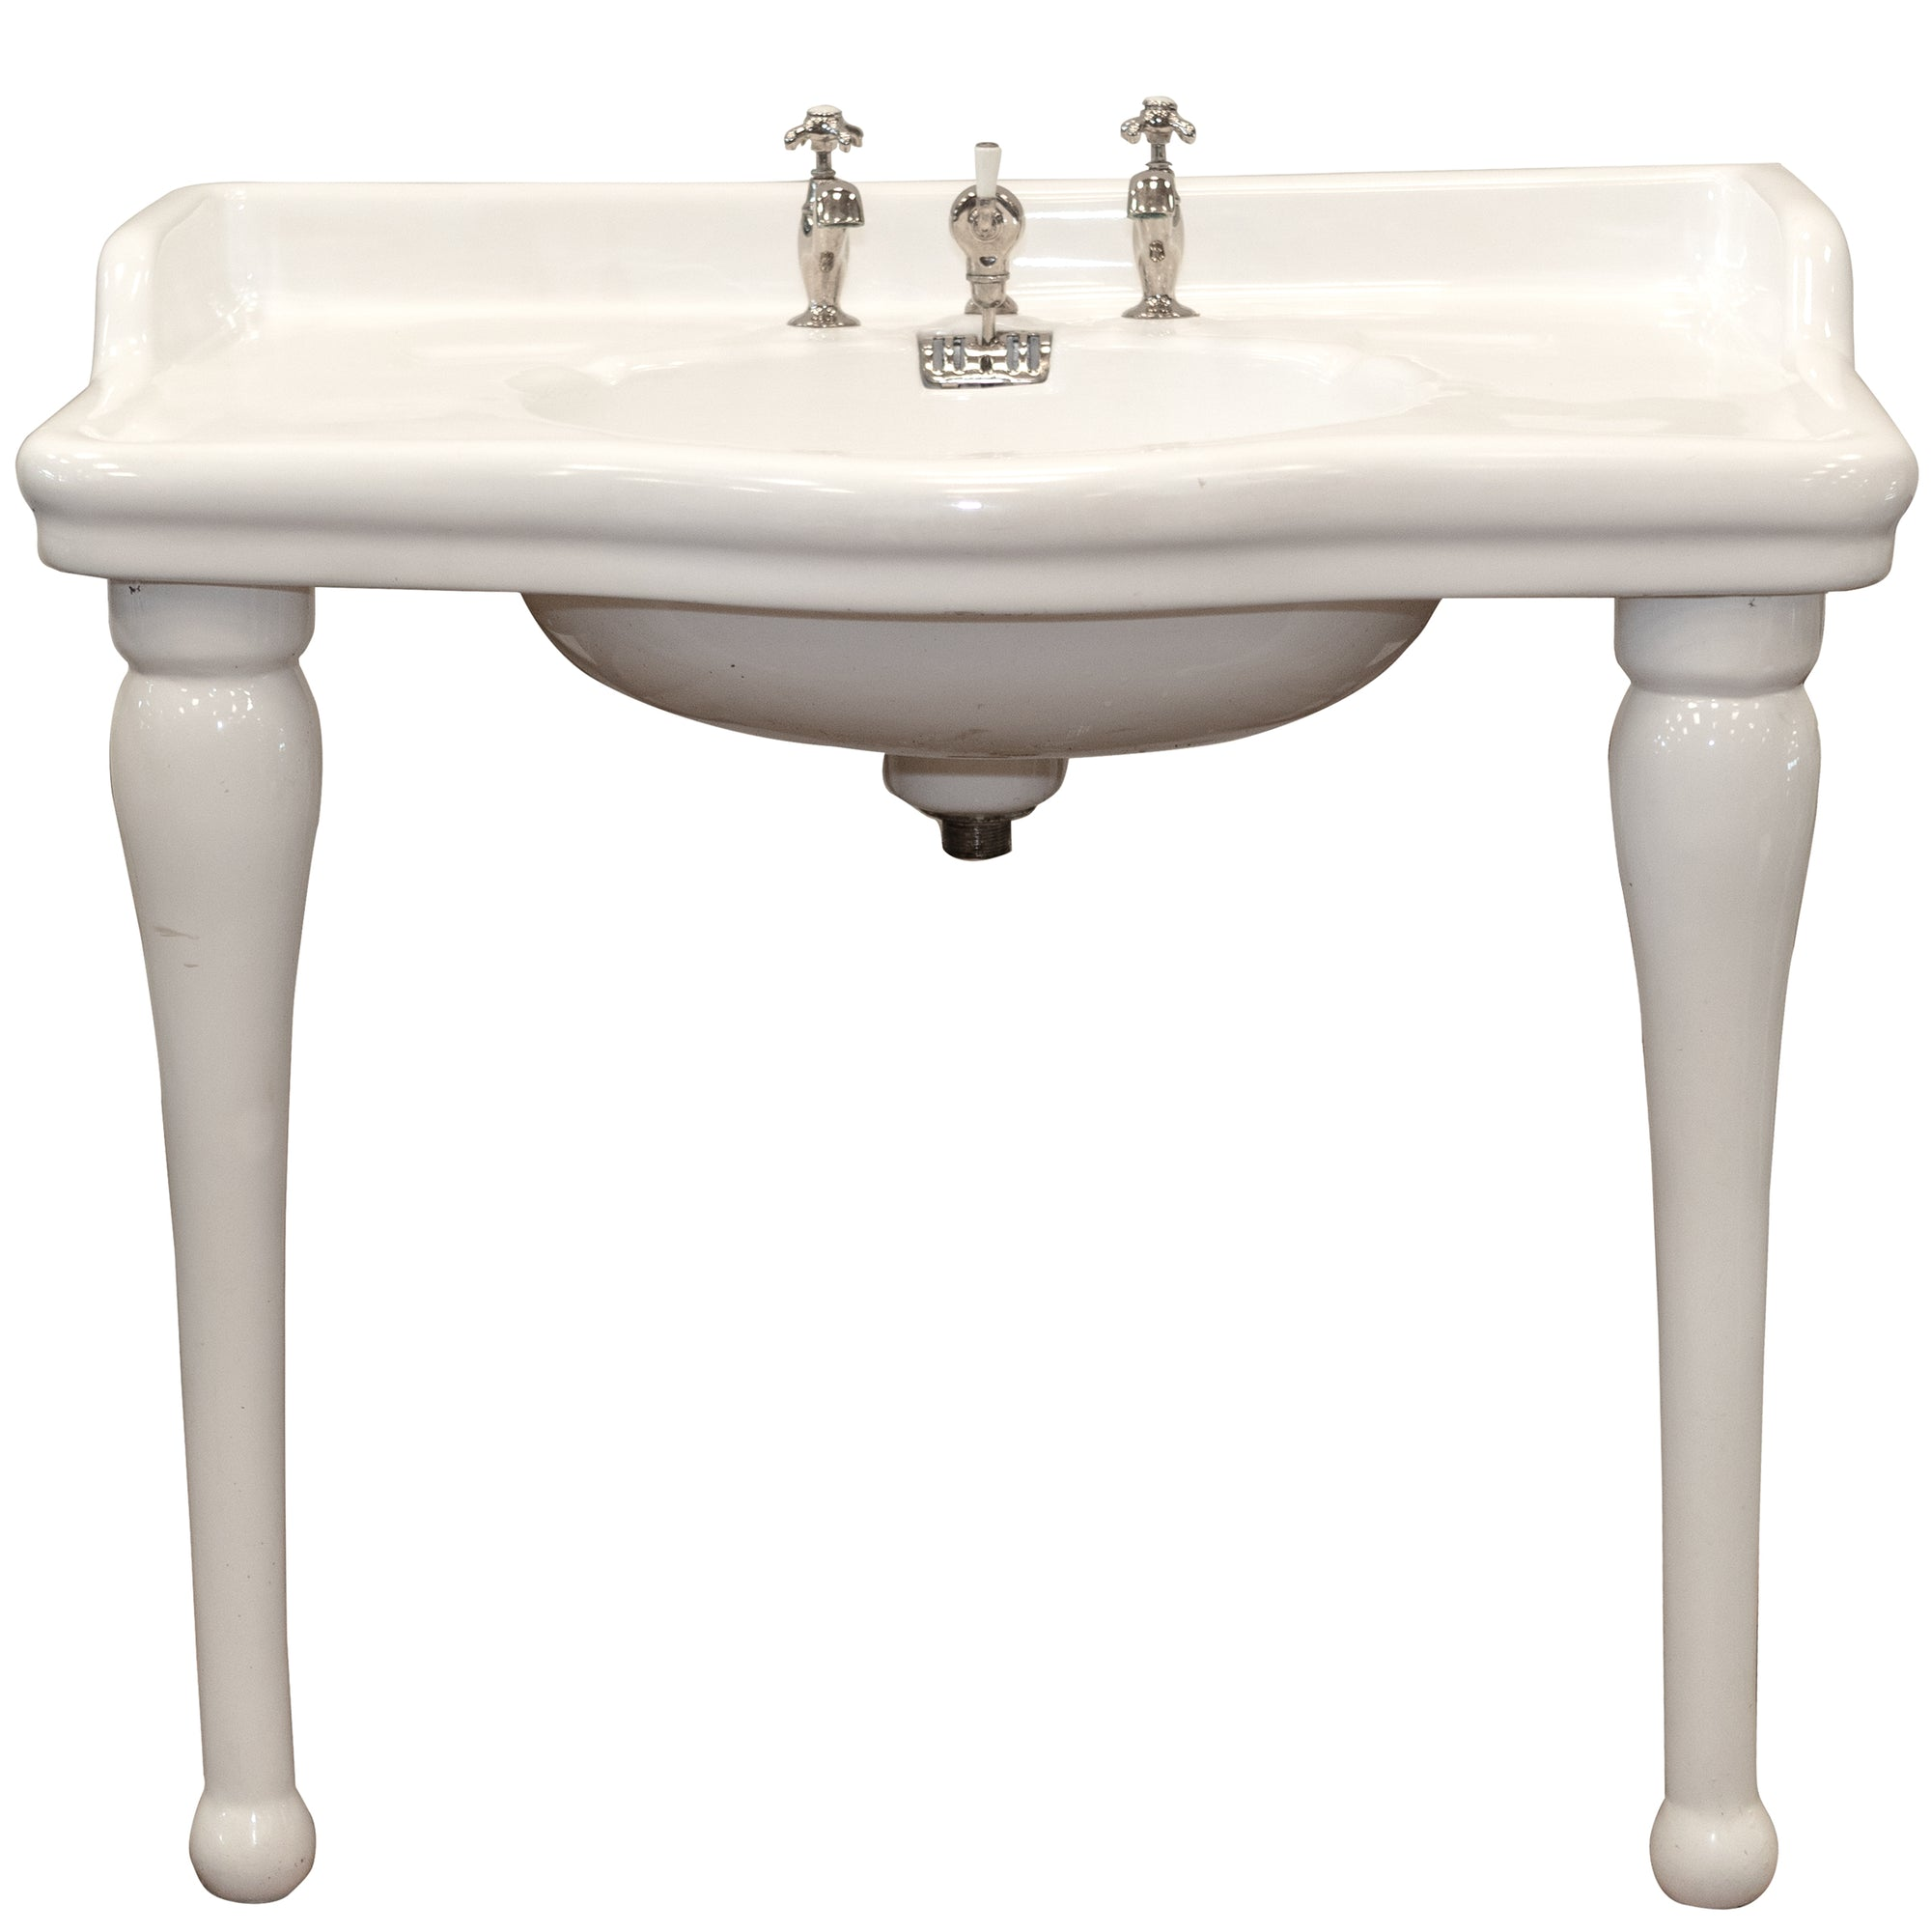 Reclaimed French La Chapelle Console Basin Sink on Legs